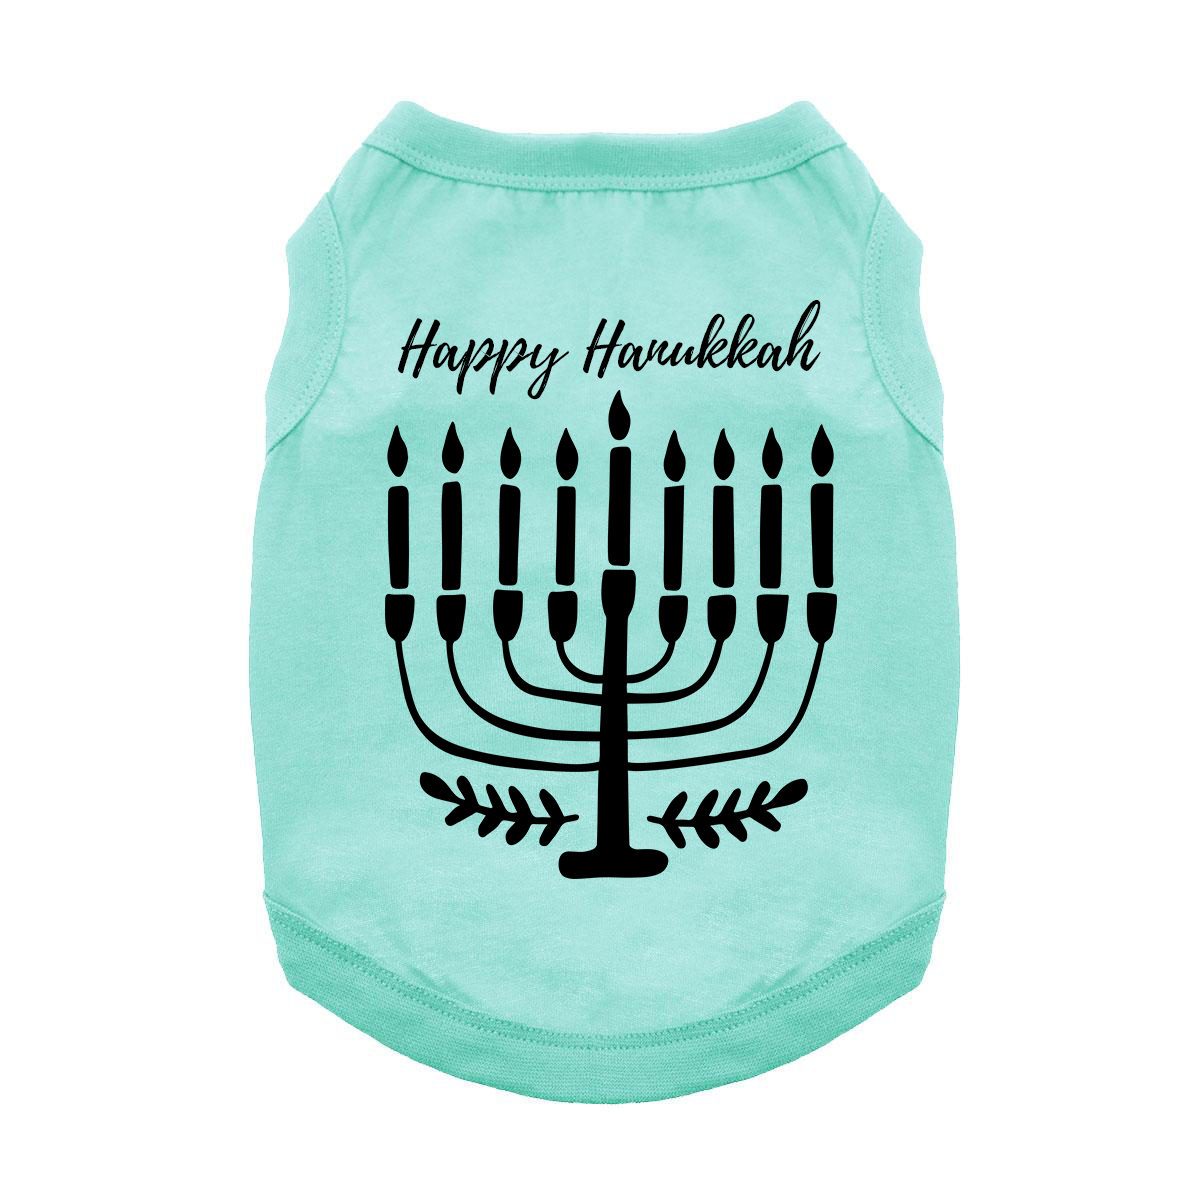 Happy Hanukkah Dog Shirt - Aqua